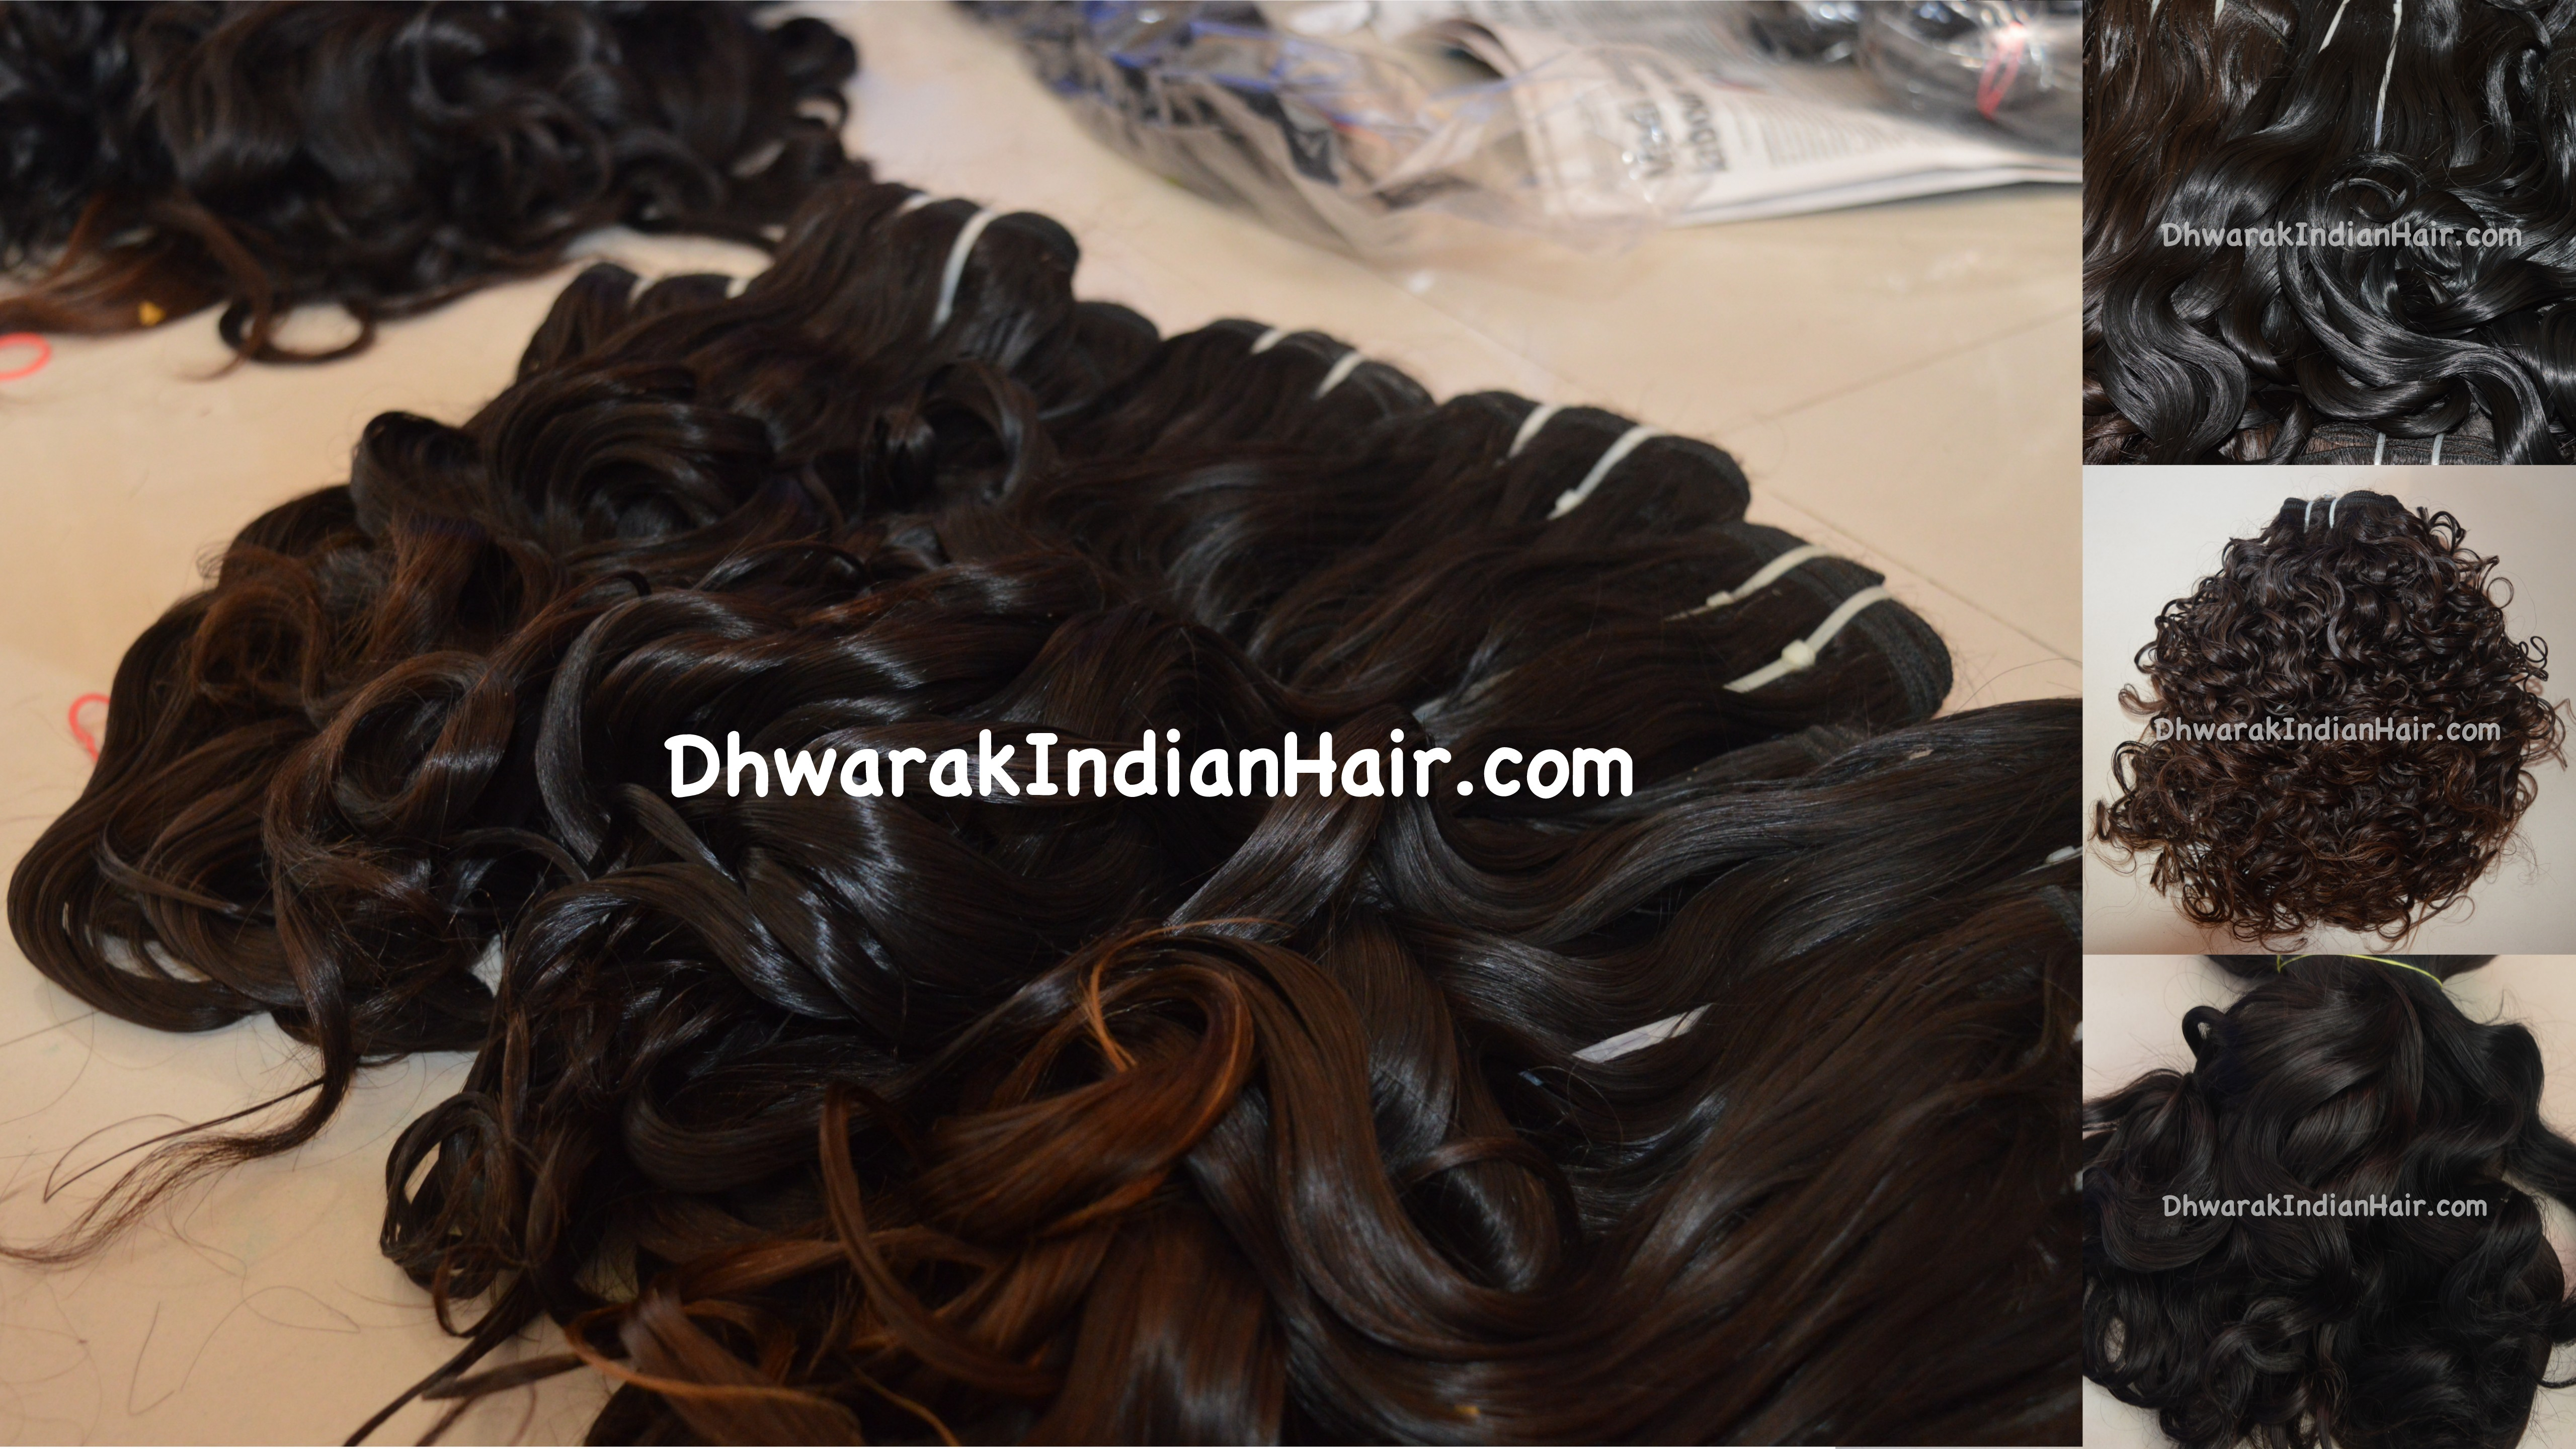 Human Hair Extensions Factory India Raw Human Hair